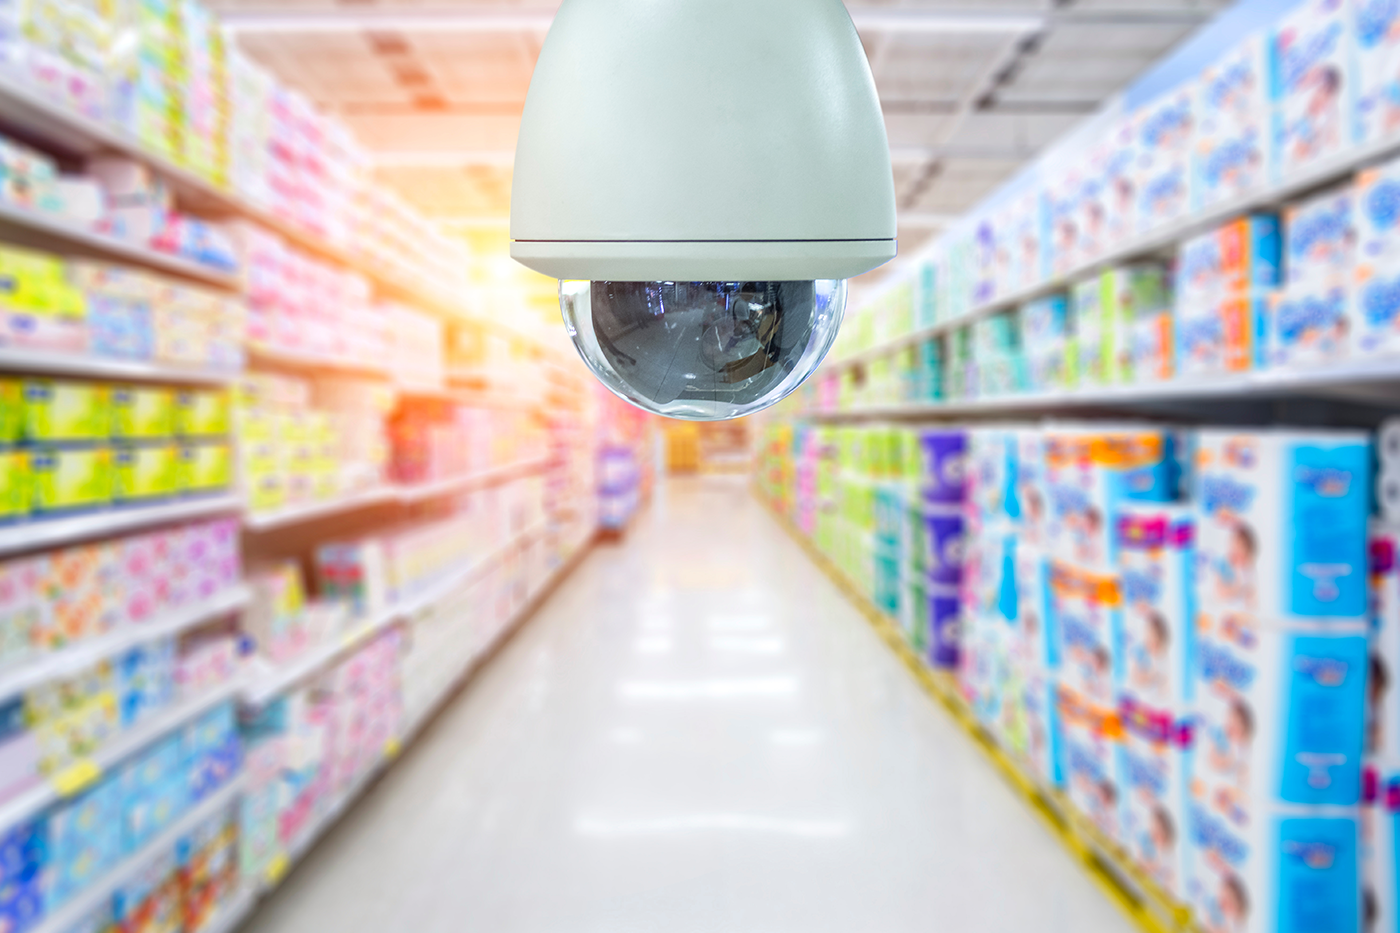 5 Retail Loss Prevention Tips to Improve Your Risk Management Strategy in 2019